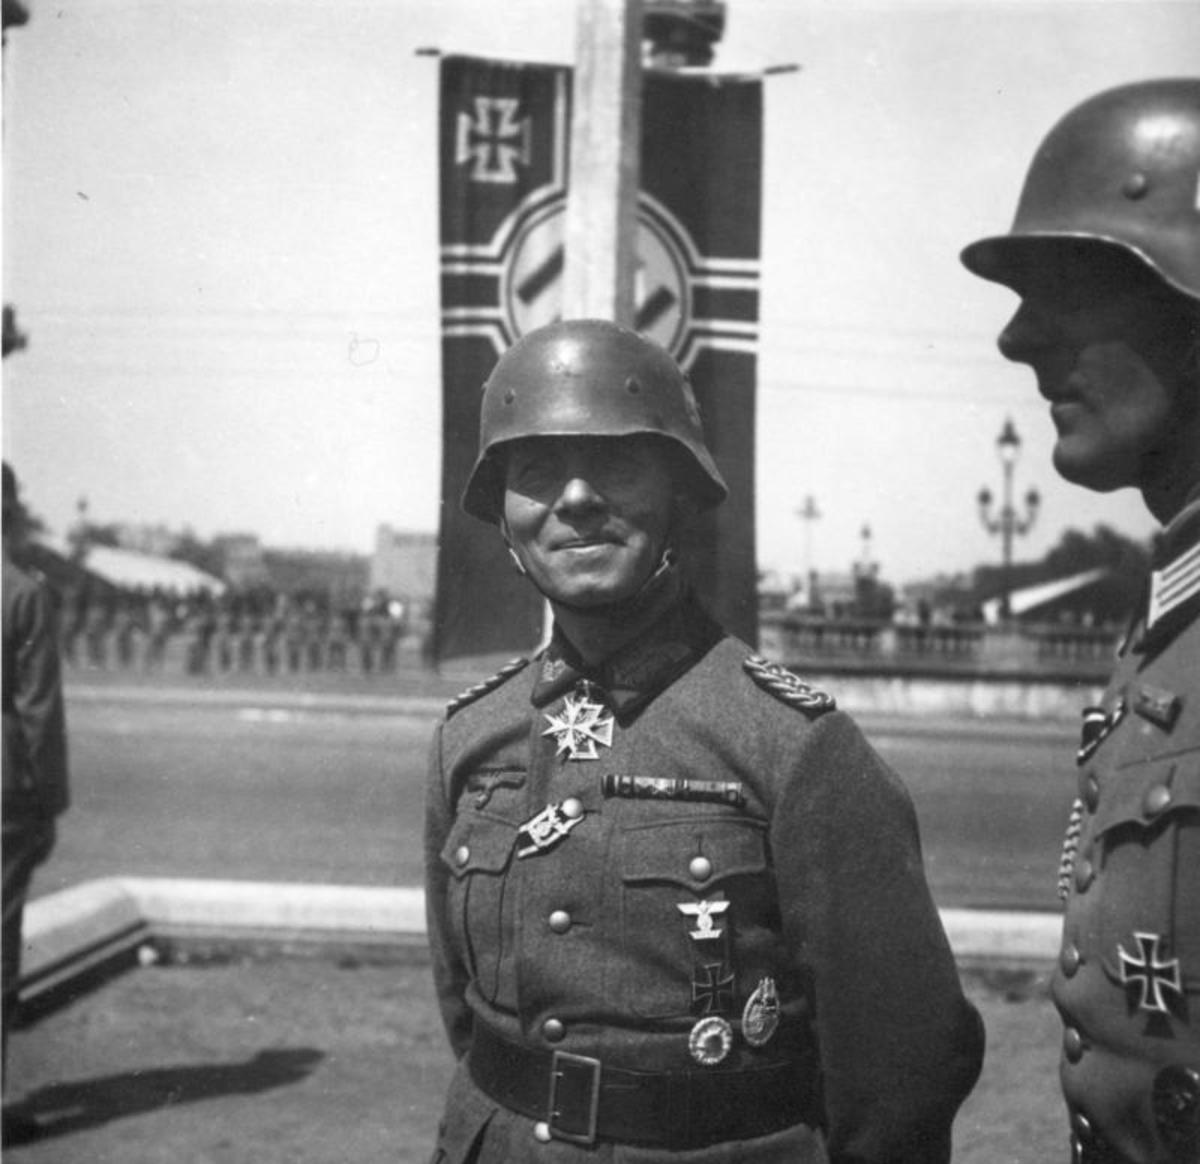 Rommel at the victory parade in Paris after the Fall of France June 1940.